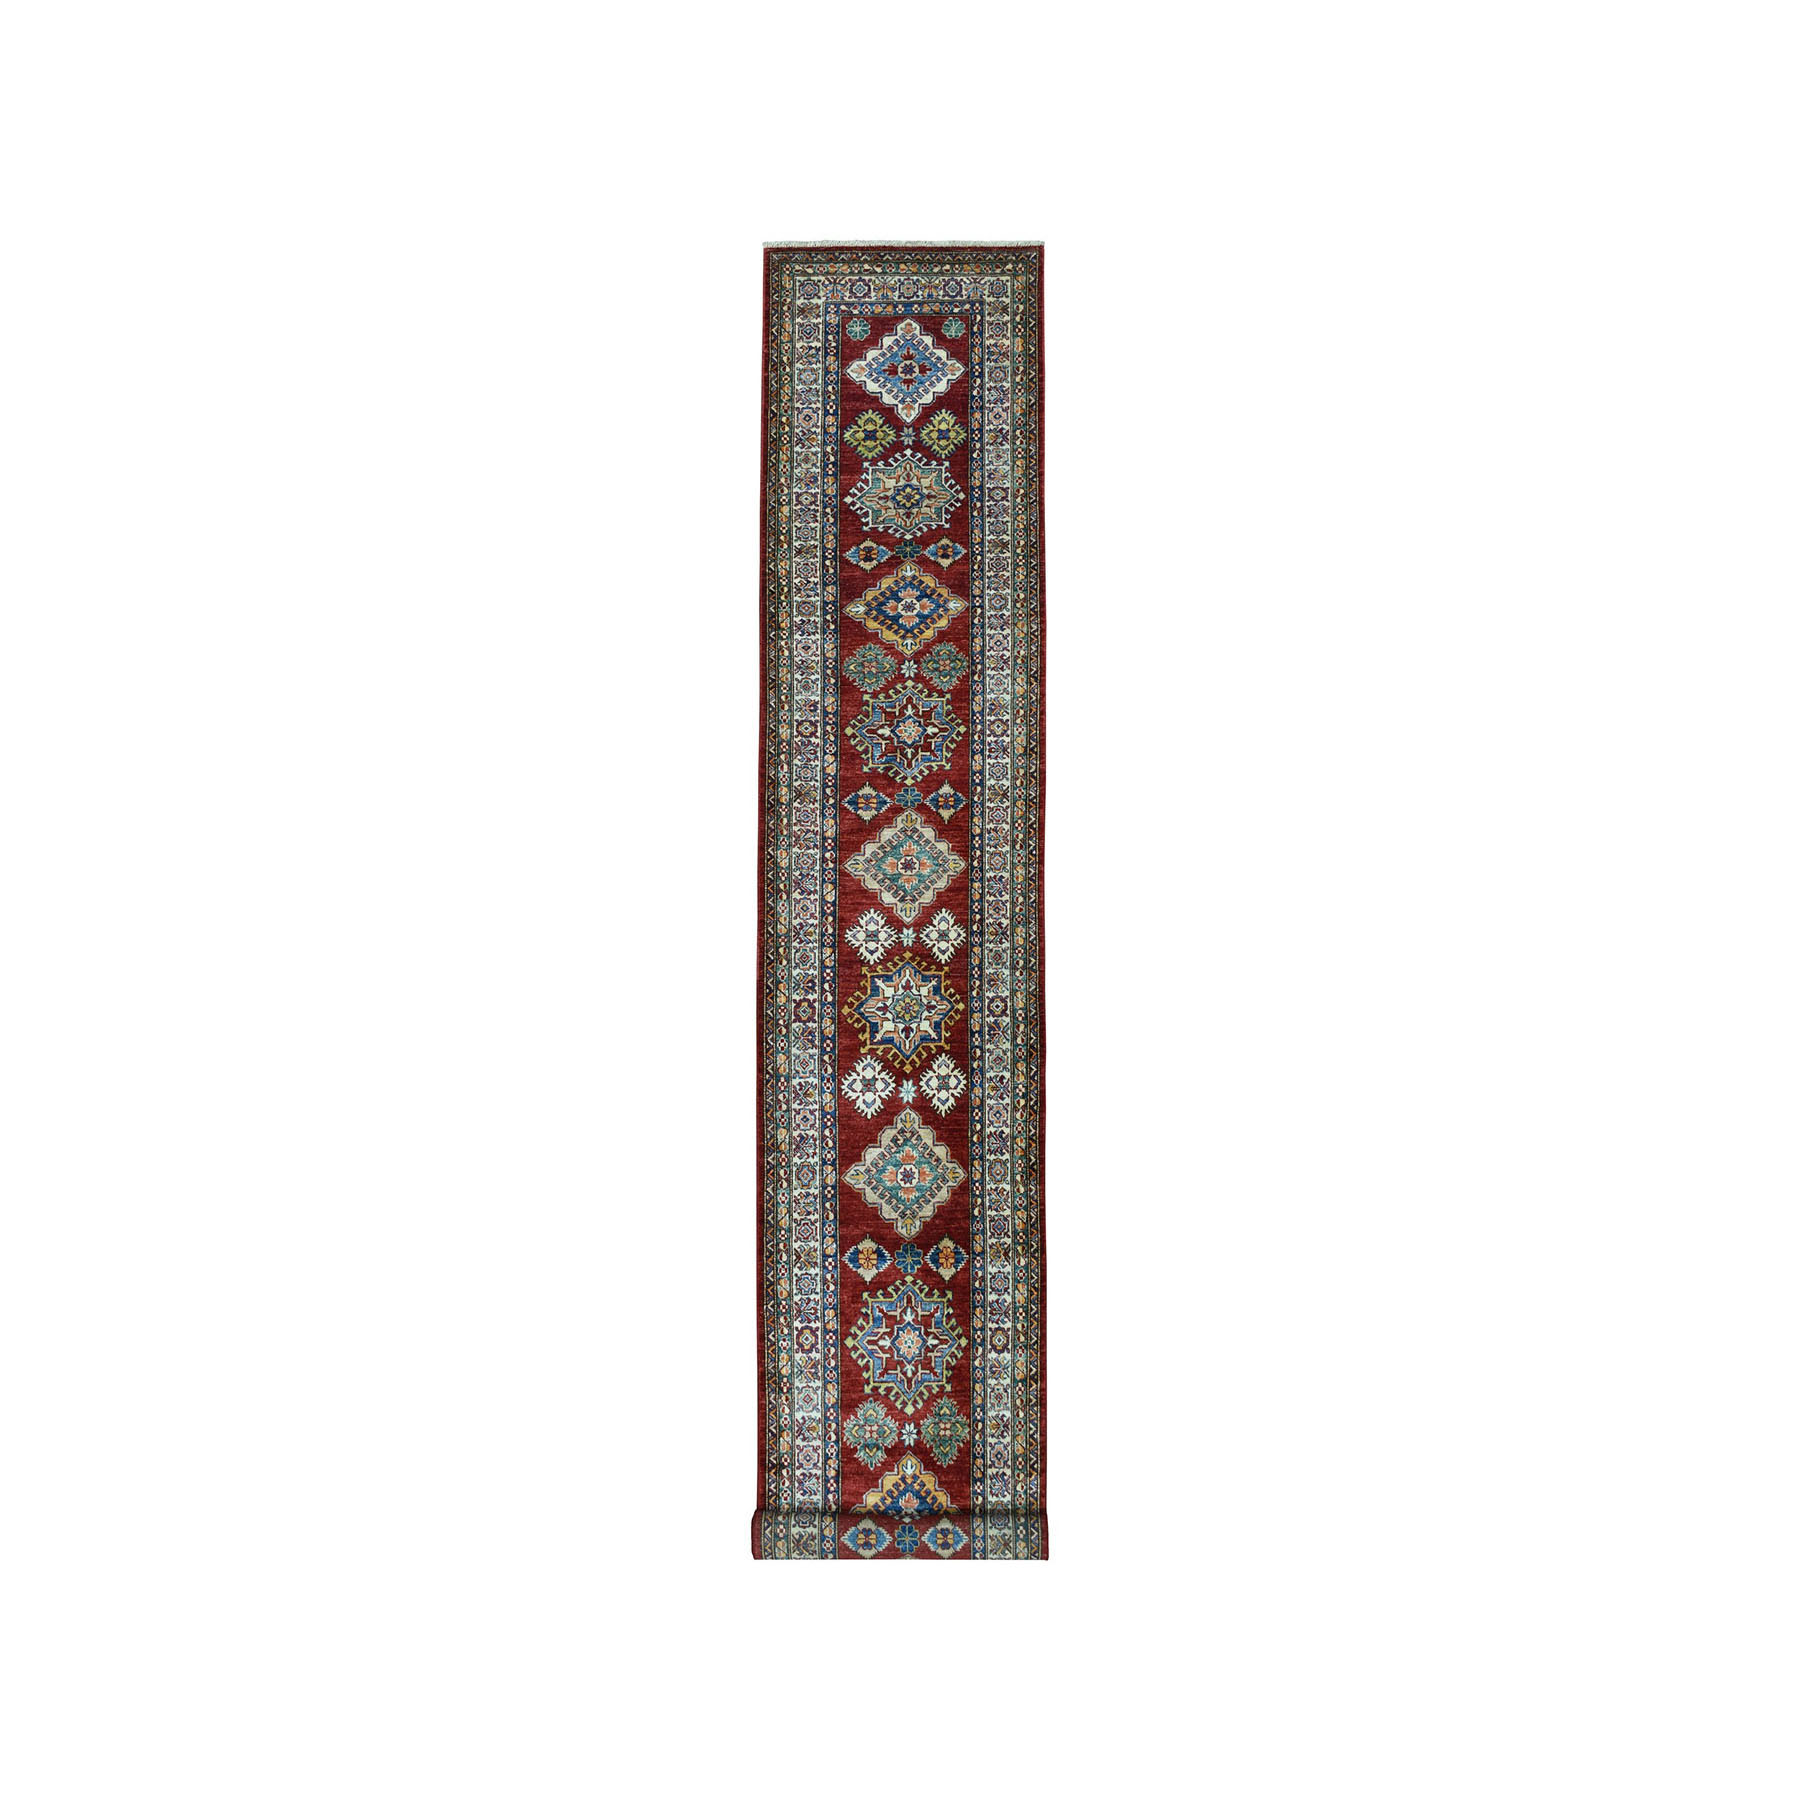 "2'10""x13'9"" Red Super Kazak Pure Wool Geometric Design Hand-Knotted Runner Oriental Rug"